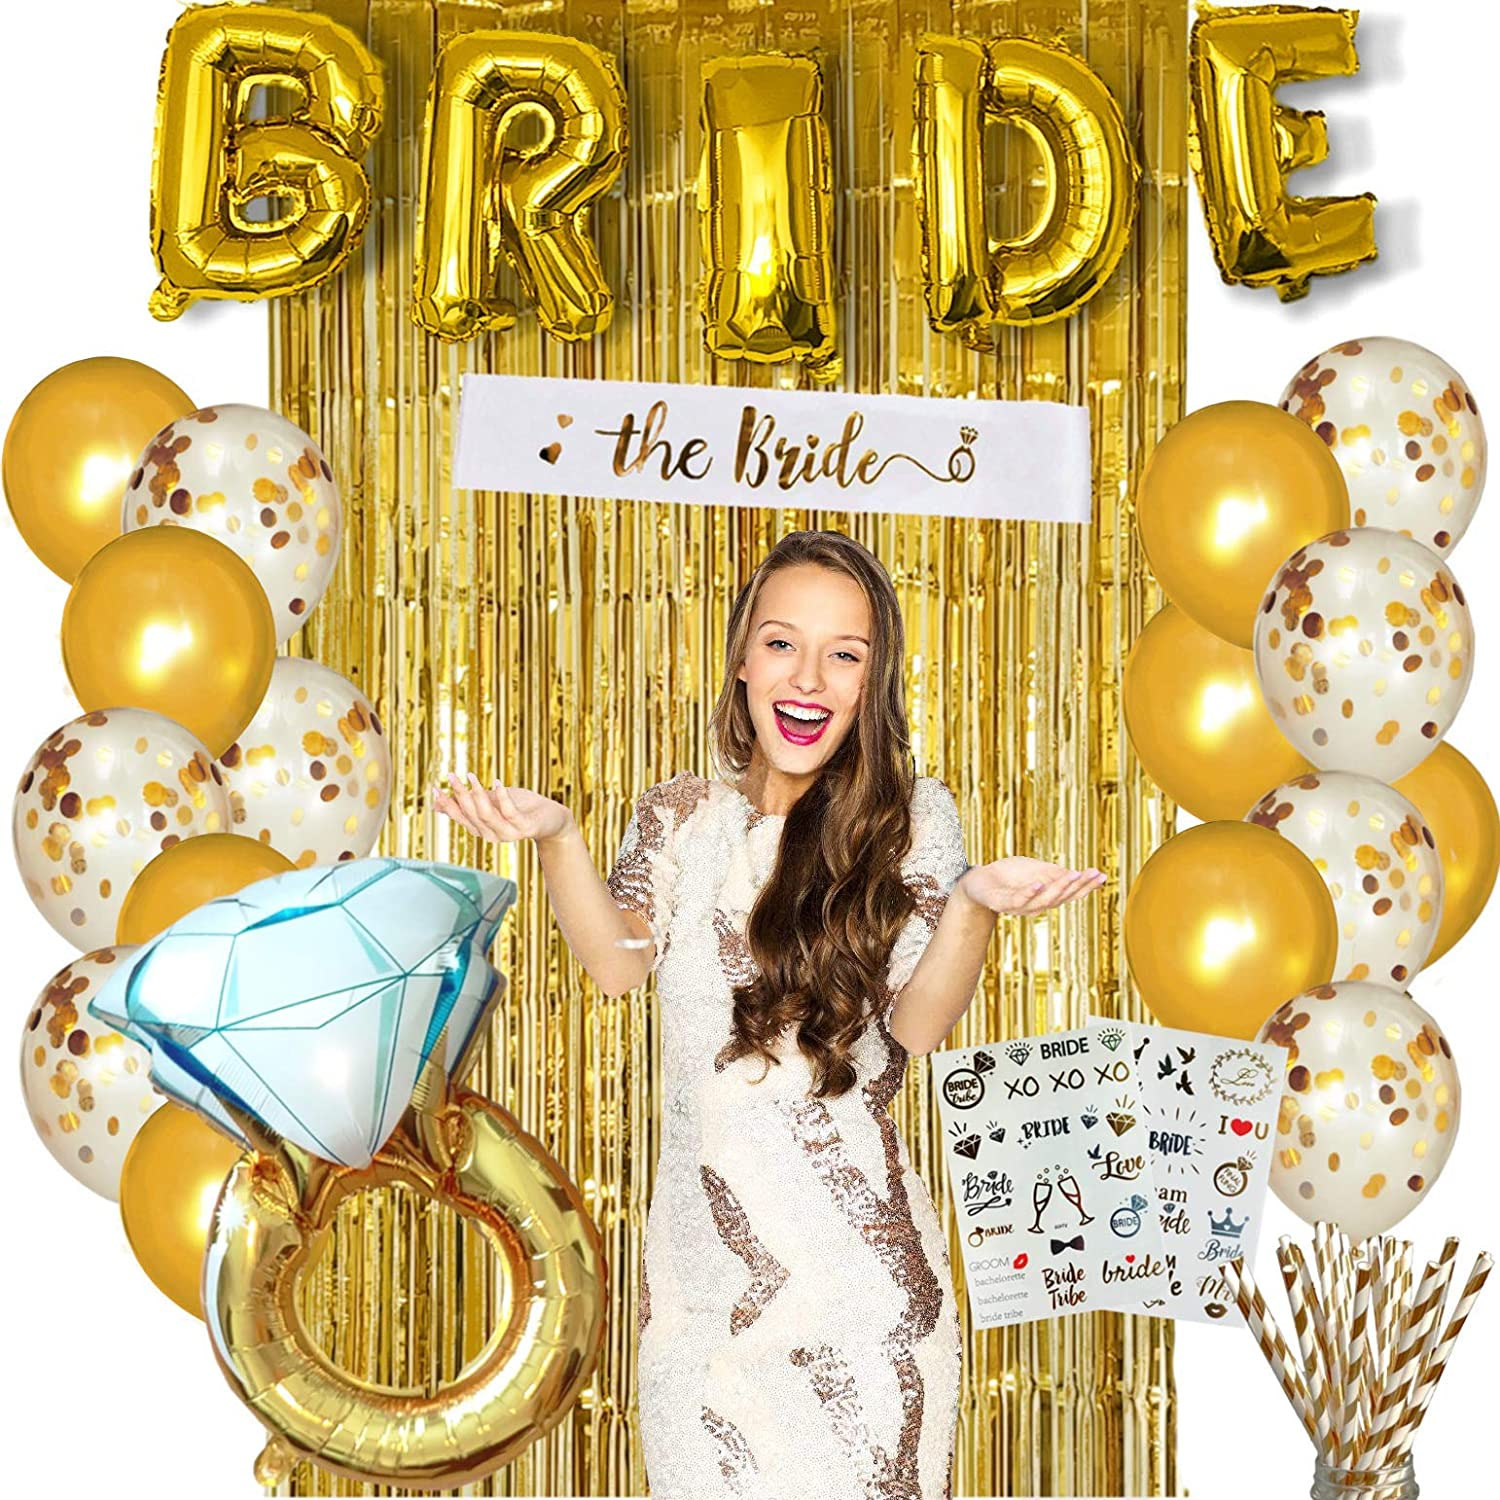 Photo backdrop Ring and Latex Balloons Tattoos Sash Gold PARTY2YOU Hen Party Decorations /& Accessories Complete set BRIDE Balloons Bridal shower Paper straws